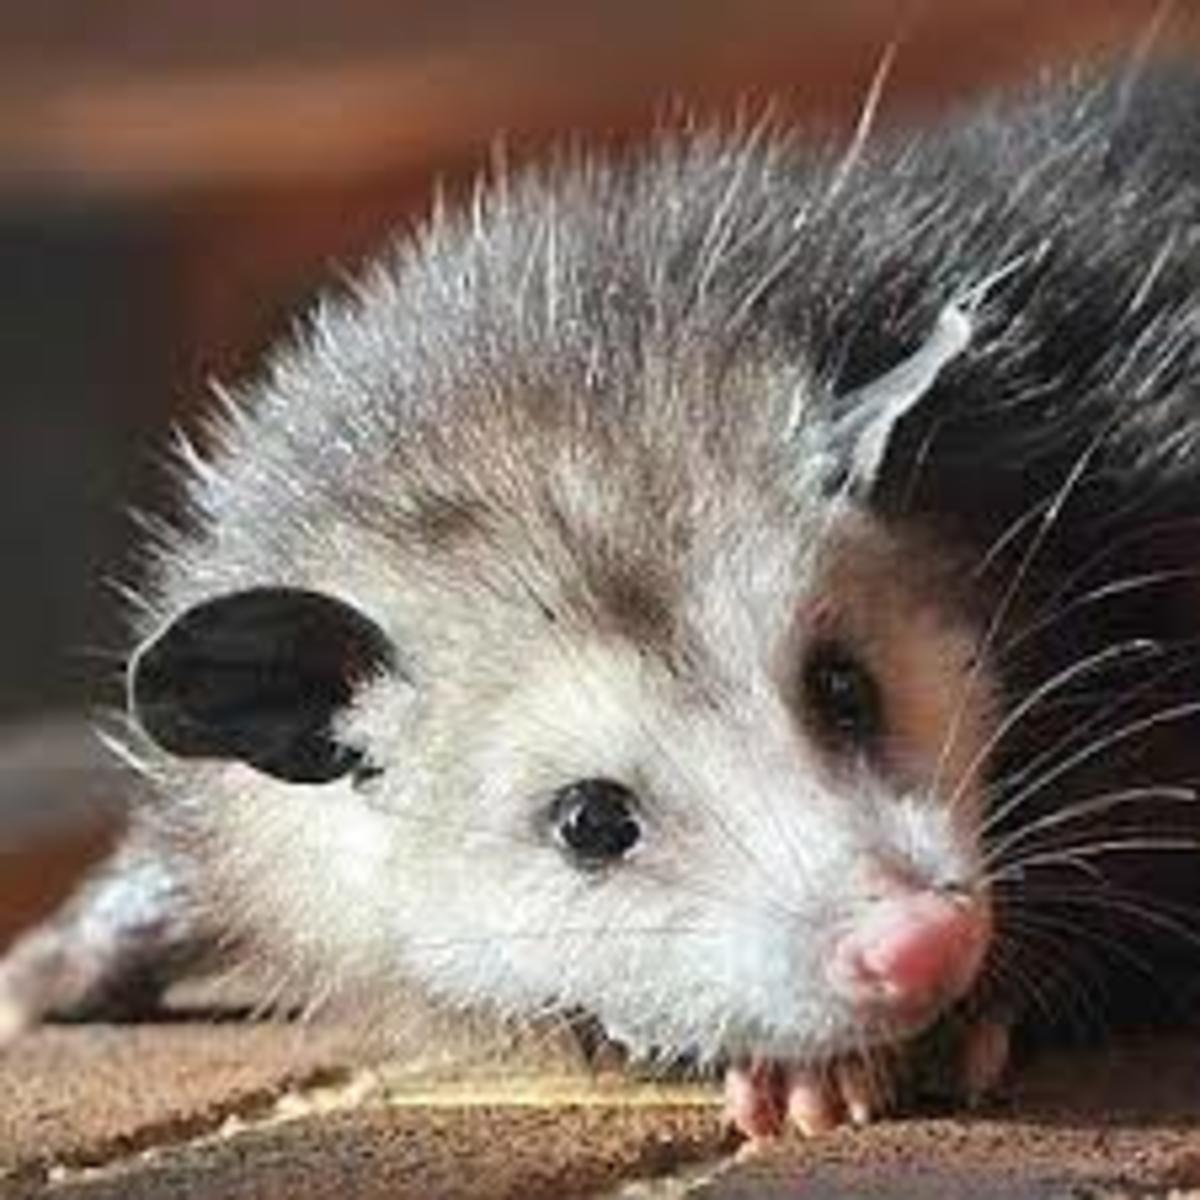 a-possum-is-not-a-throw-away-animal